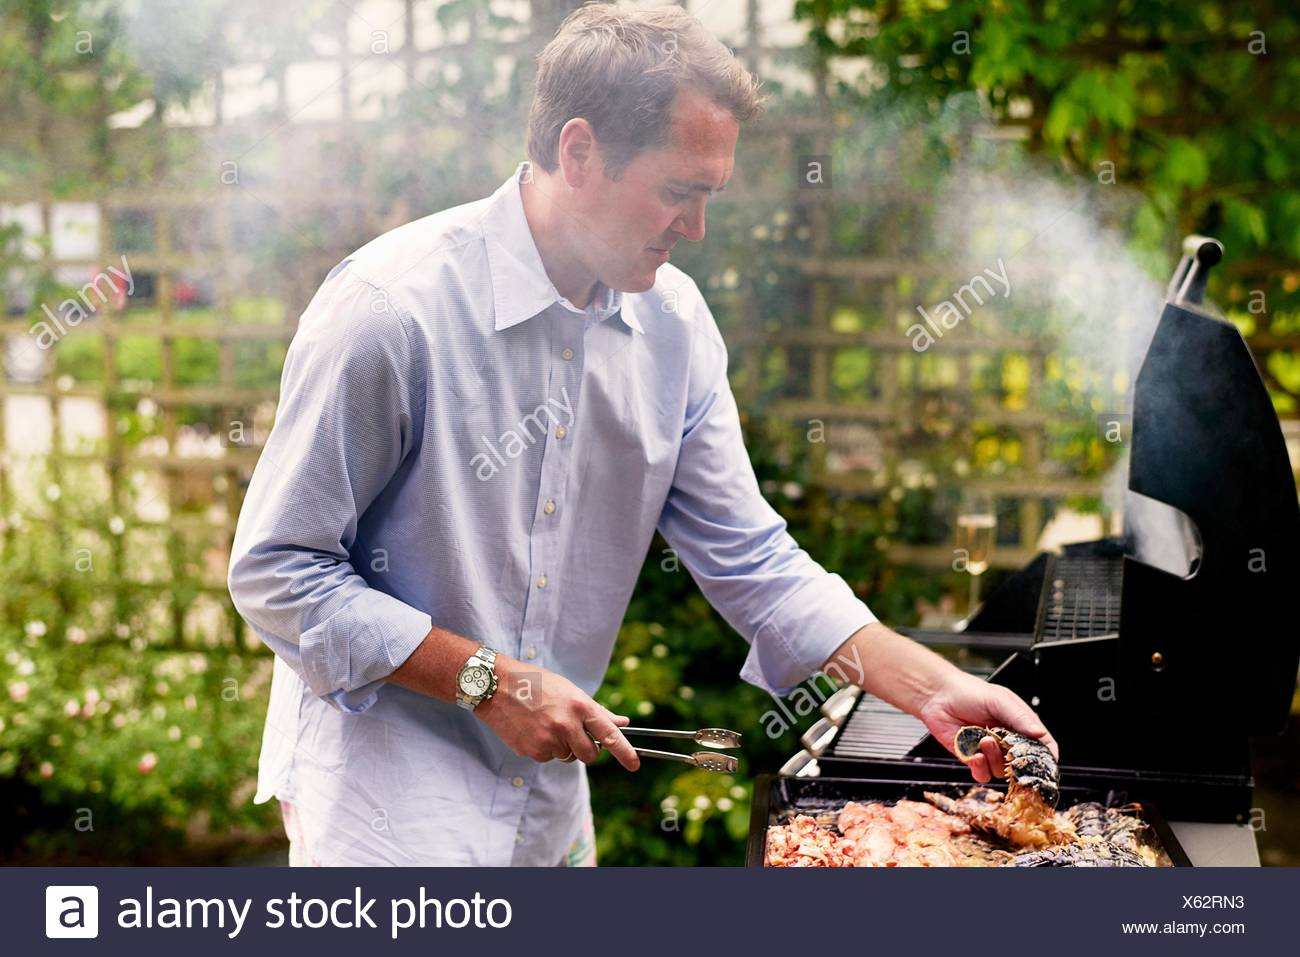 Mature man cooking seafood on barbecue - Stock Image